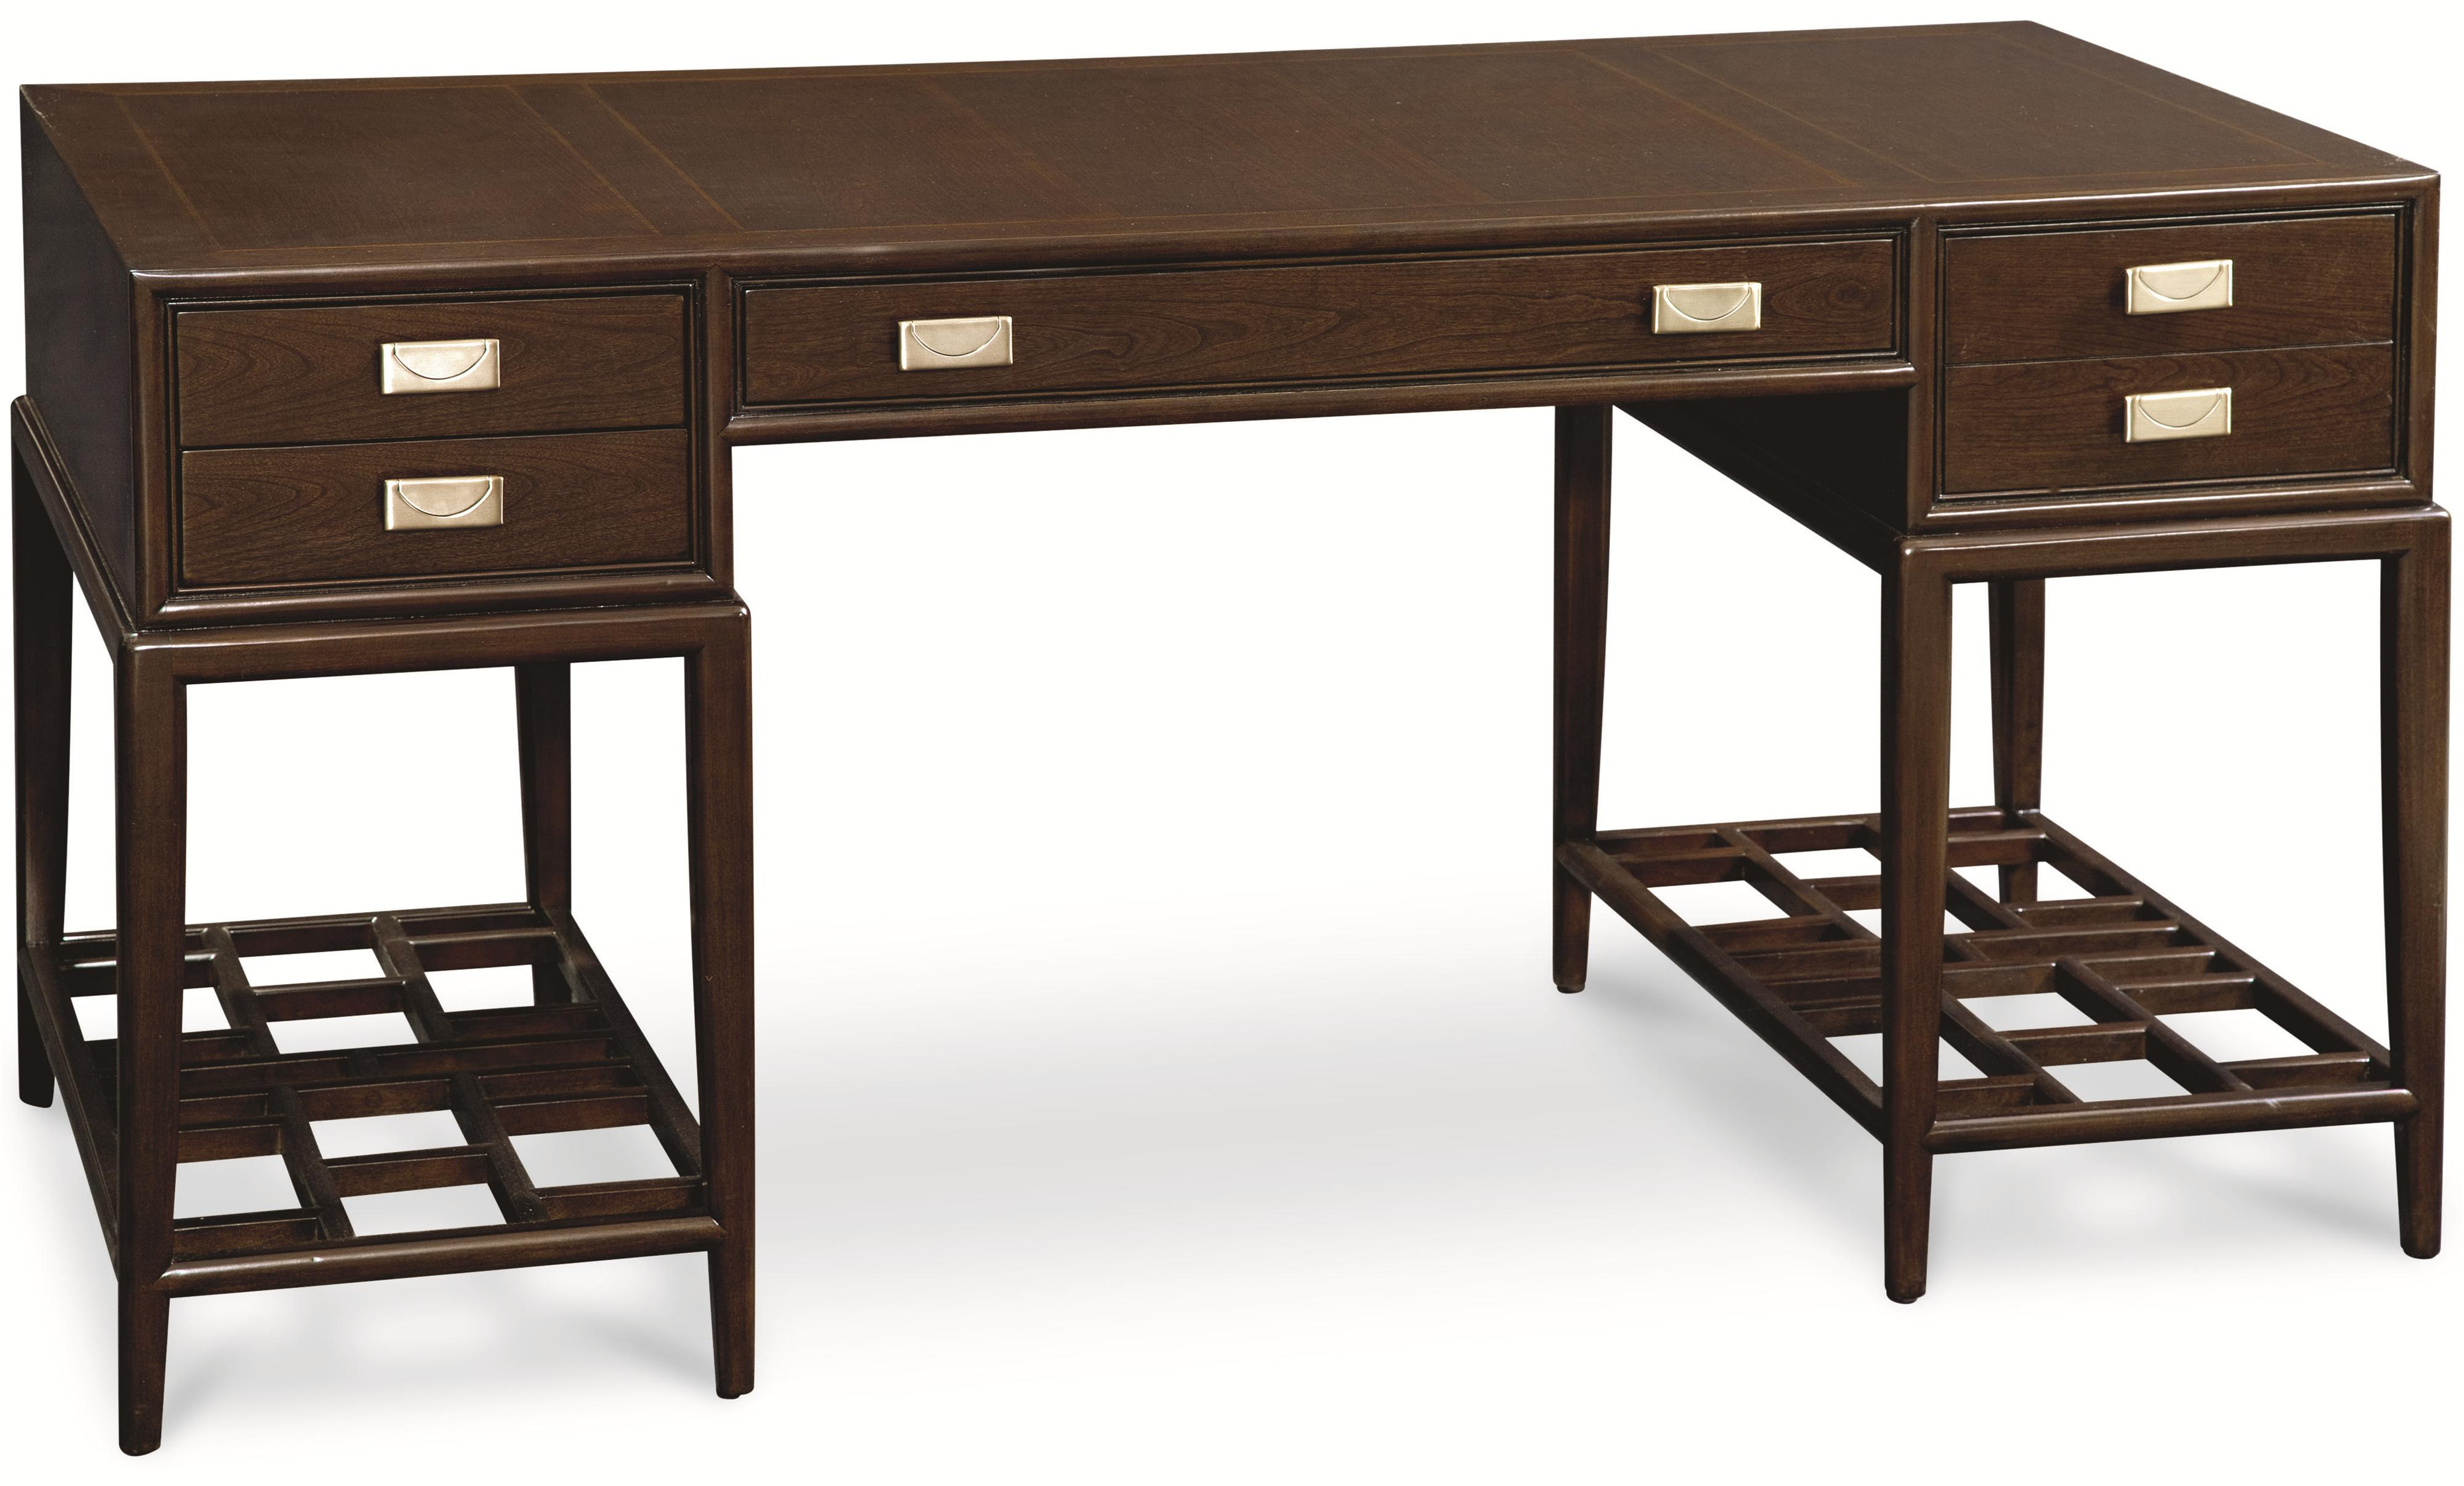 thomasville writing desk Thomasville item #: laffont writing desk pay with your wright furniture & flooring renovate card to get the style you want and the value you need with.